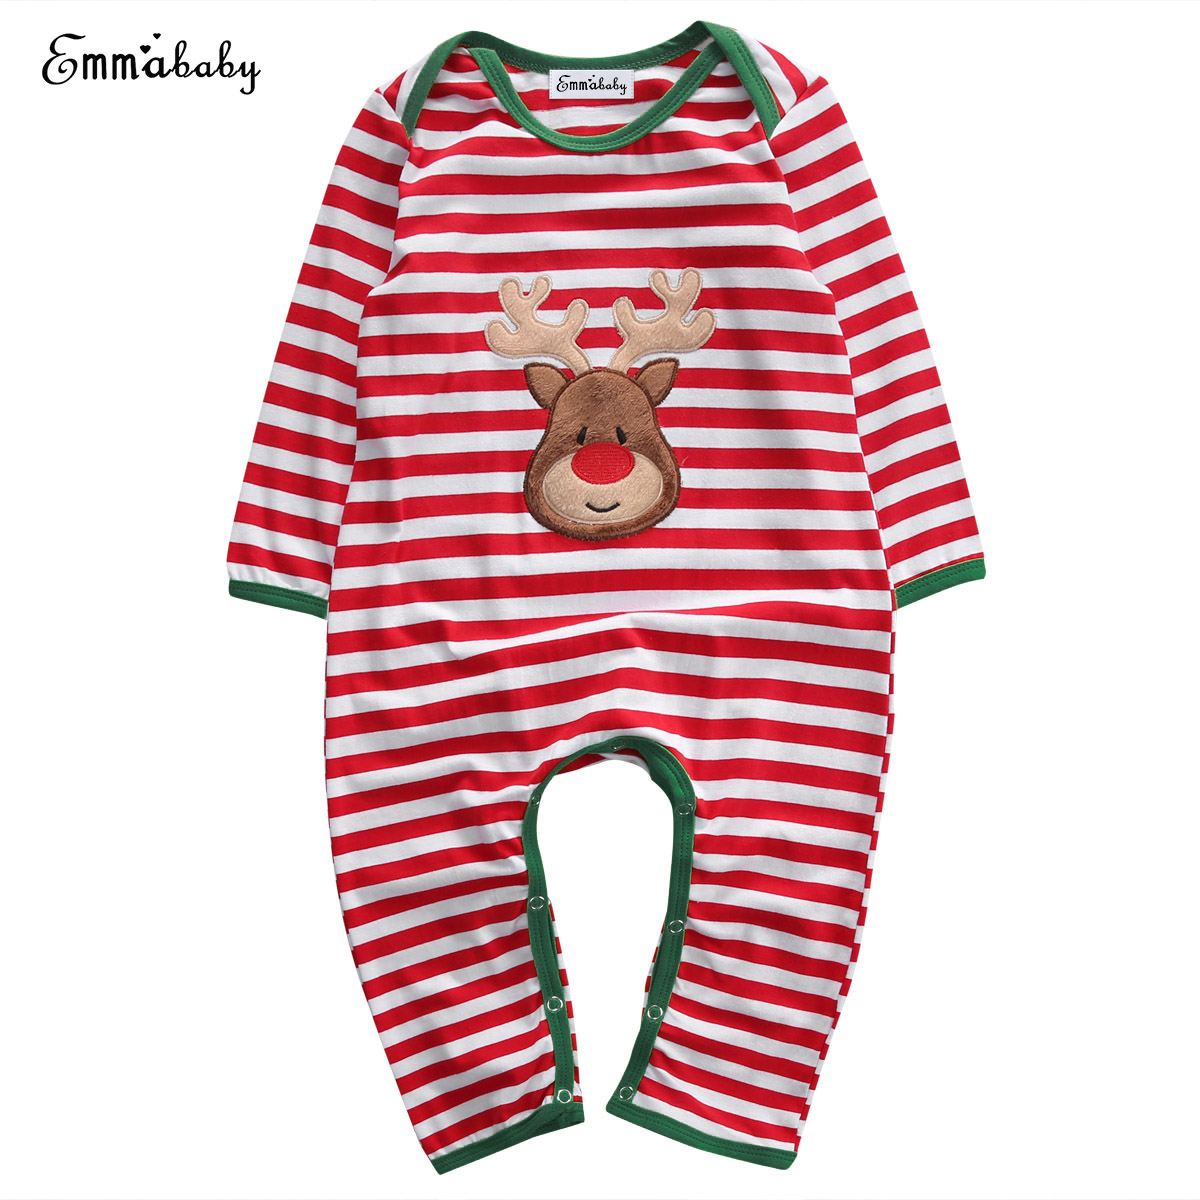 Emmababy Unisex Newborn Infant Baby Boy Girls Clothes Pajamas Playsuit   Romper   Pullover Cute Baby Costume Outfit Christmas Gift